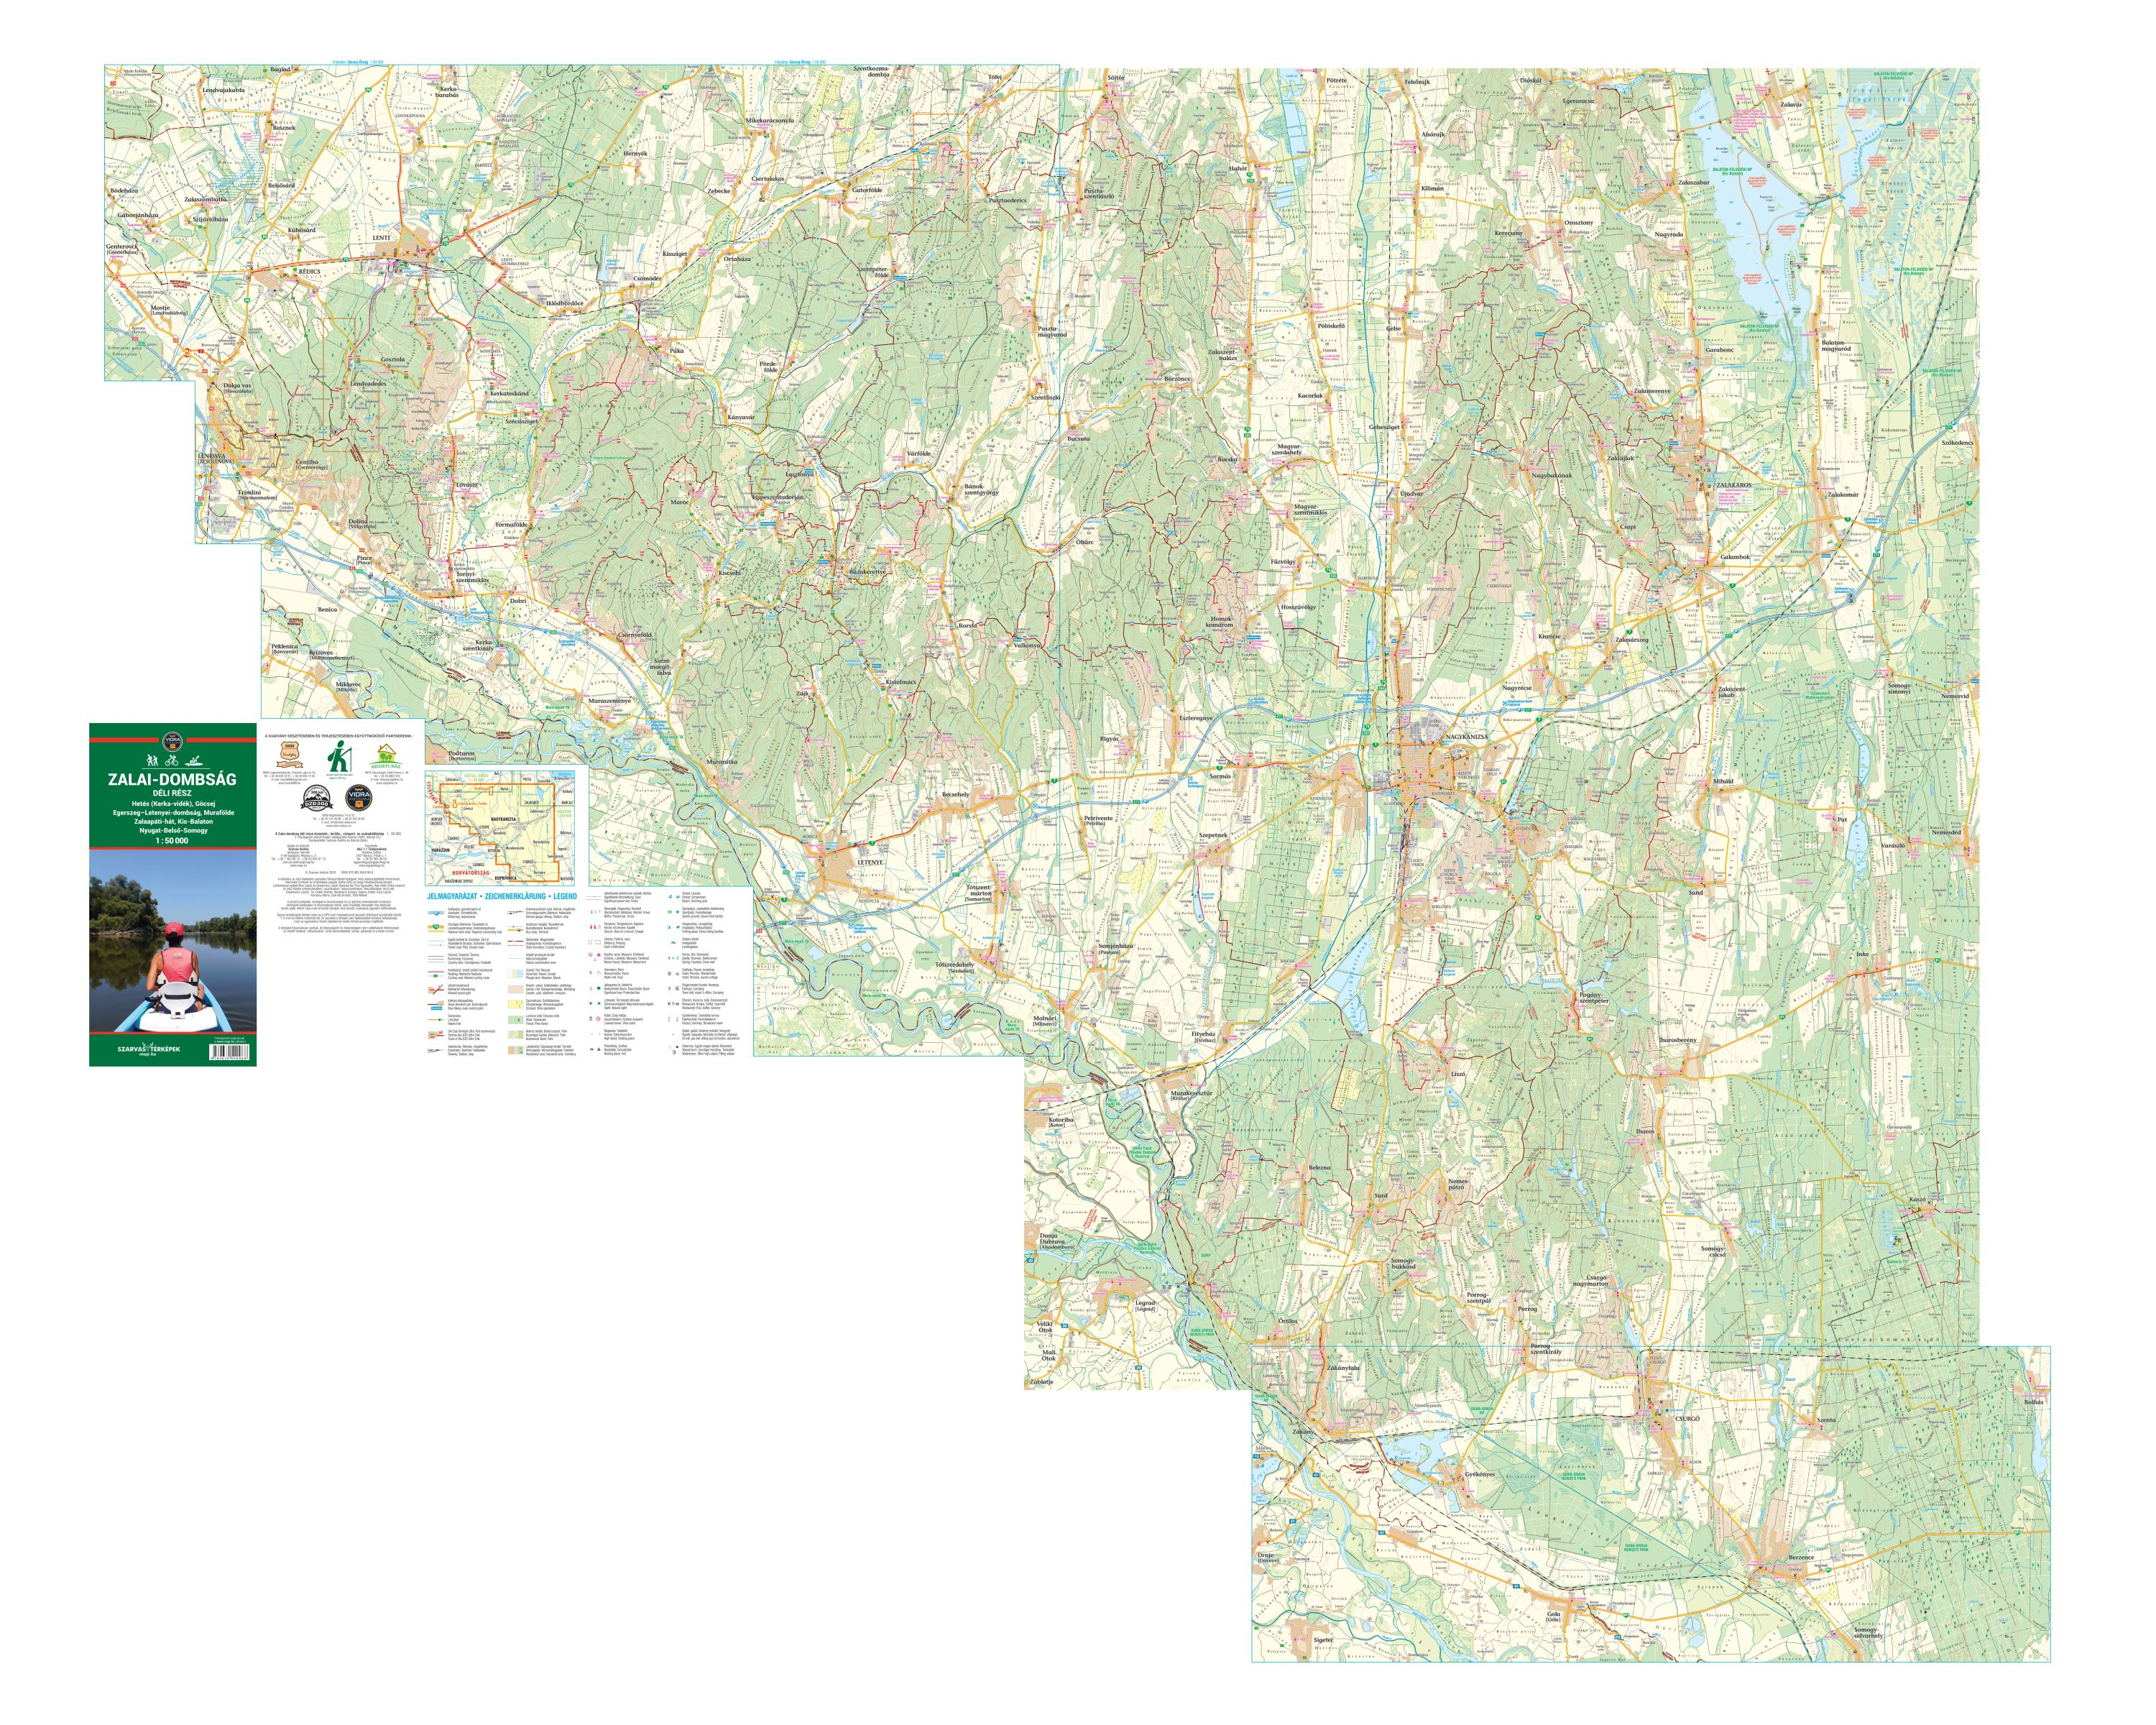 Tourist-biking map for mobile devices and tablets